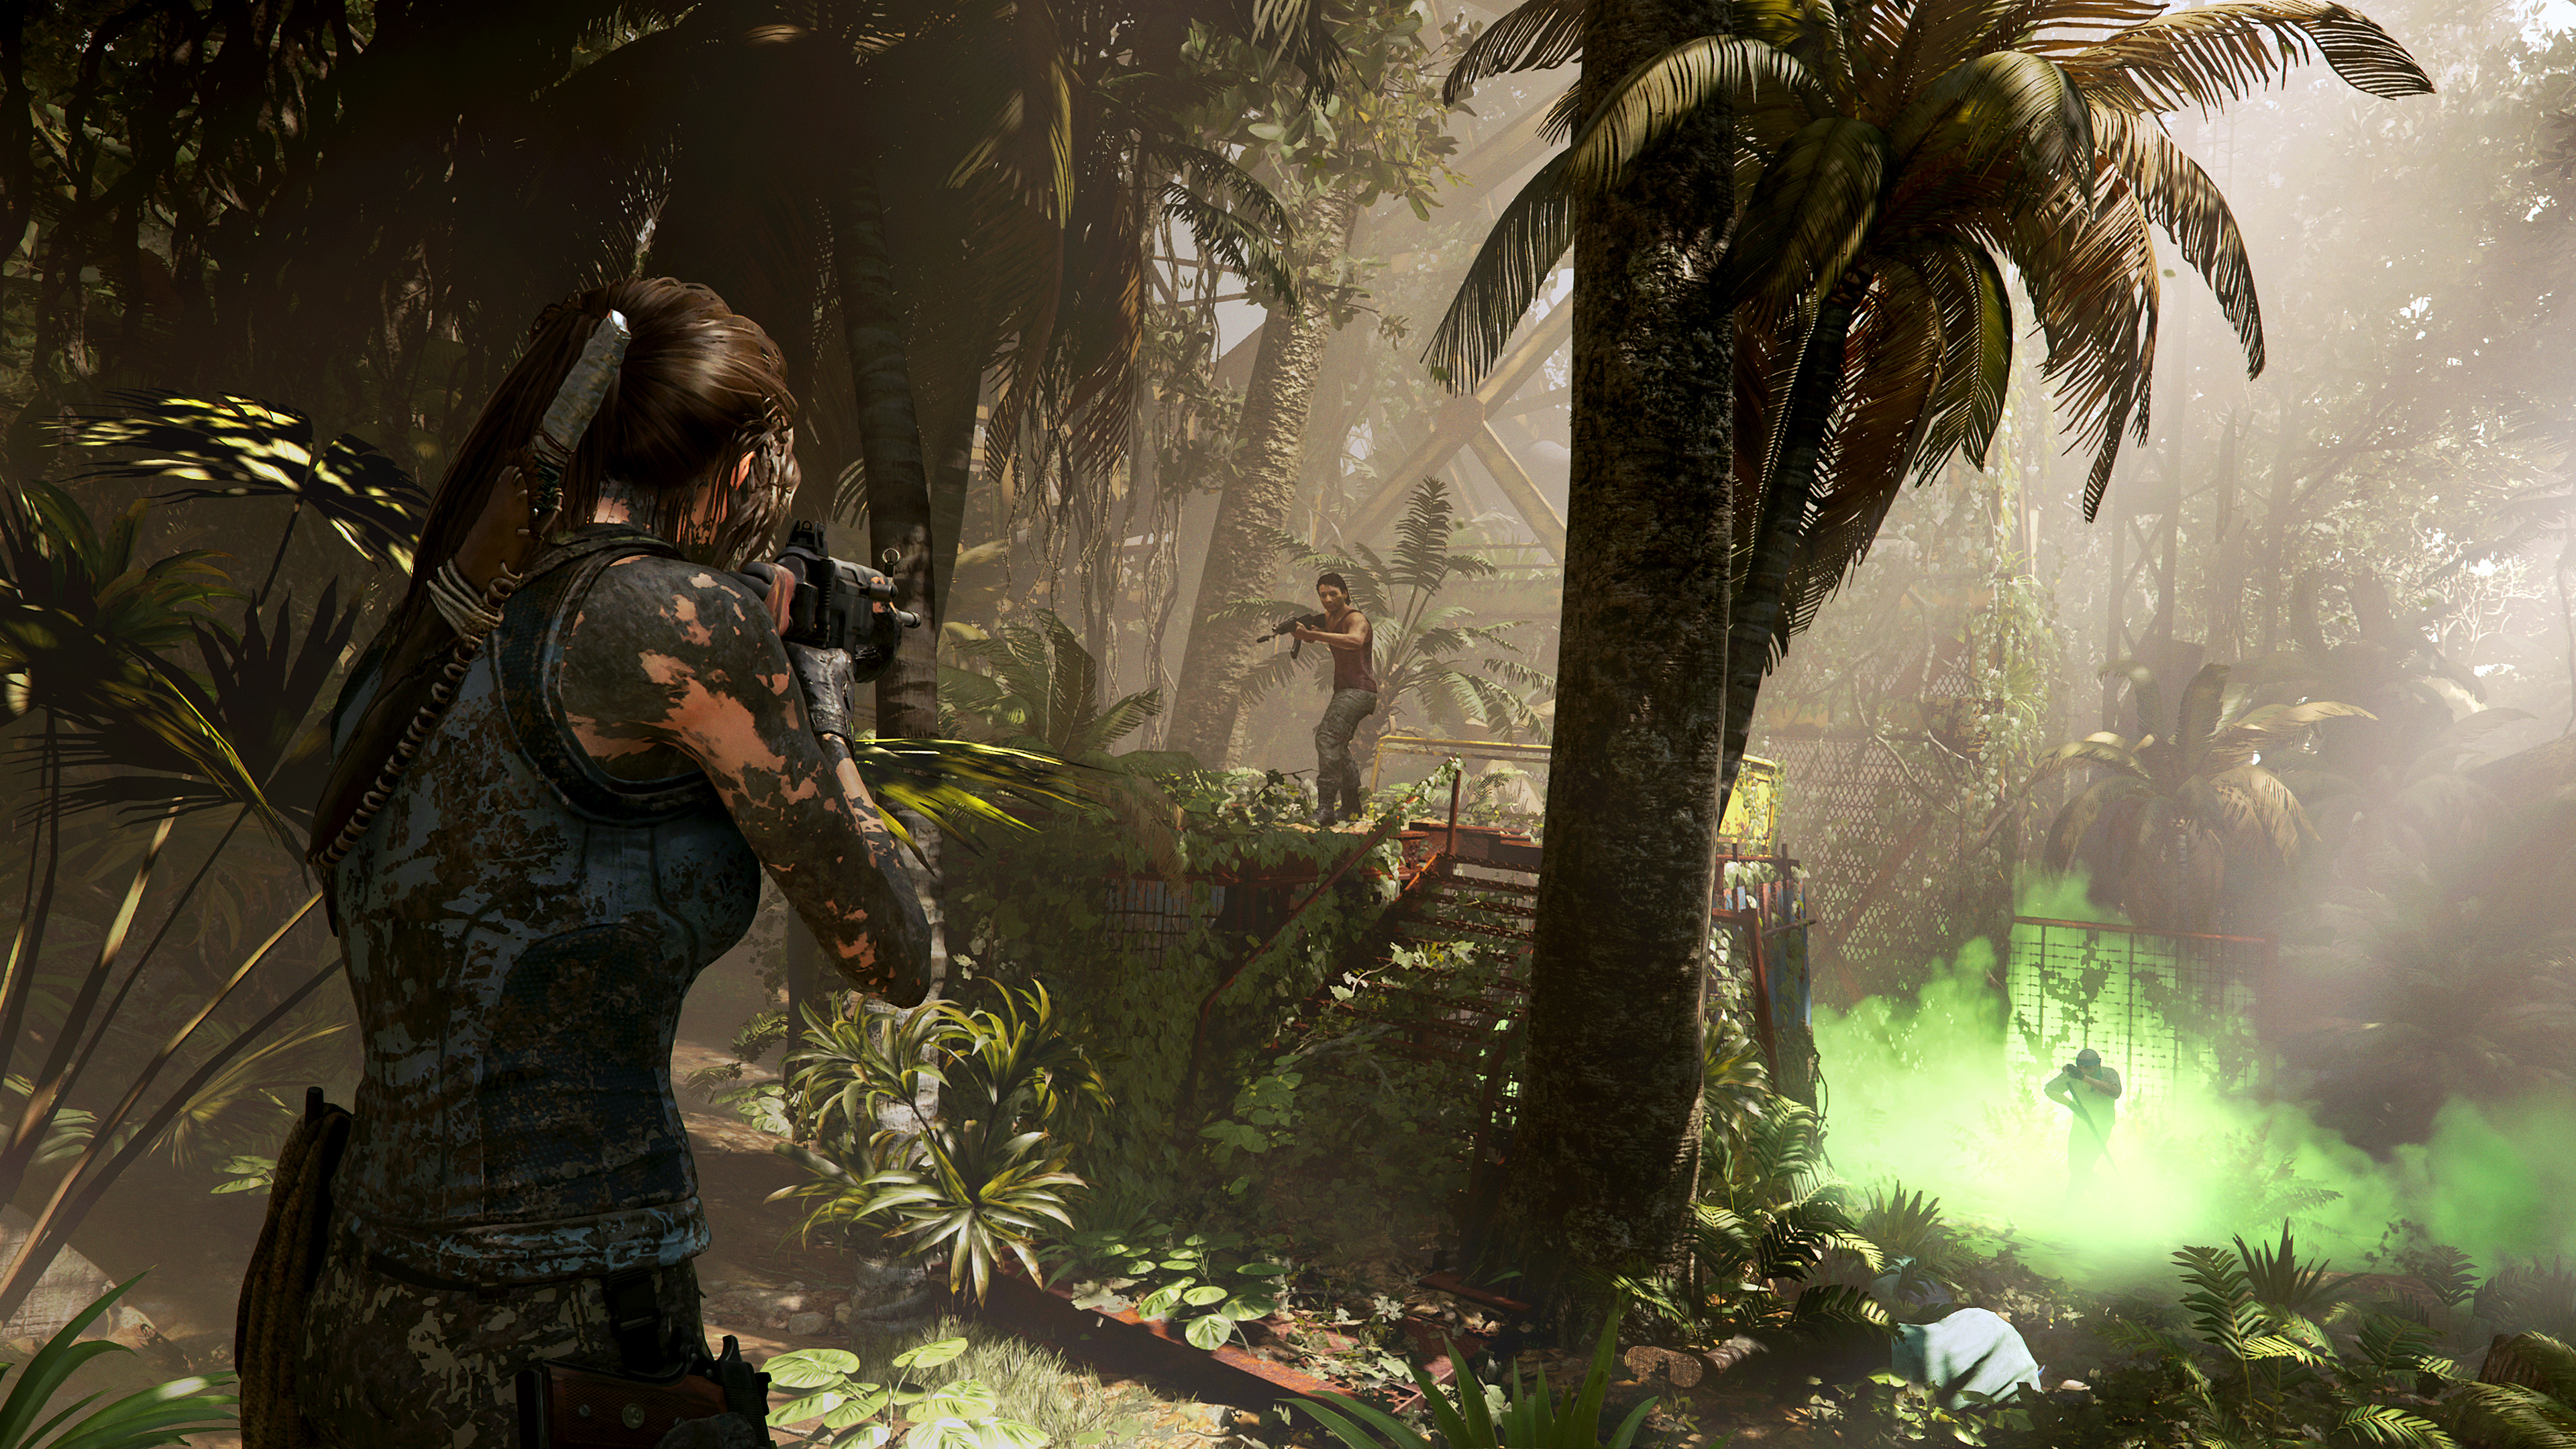 Gaming Shadow Of The Tomb Raider Dx12 The Intel Xeon W 3175x Review 28 Unlocked Cores 2999